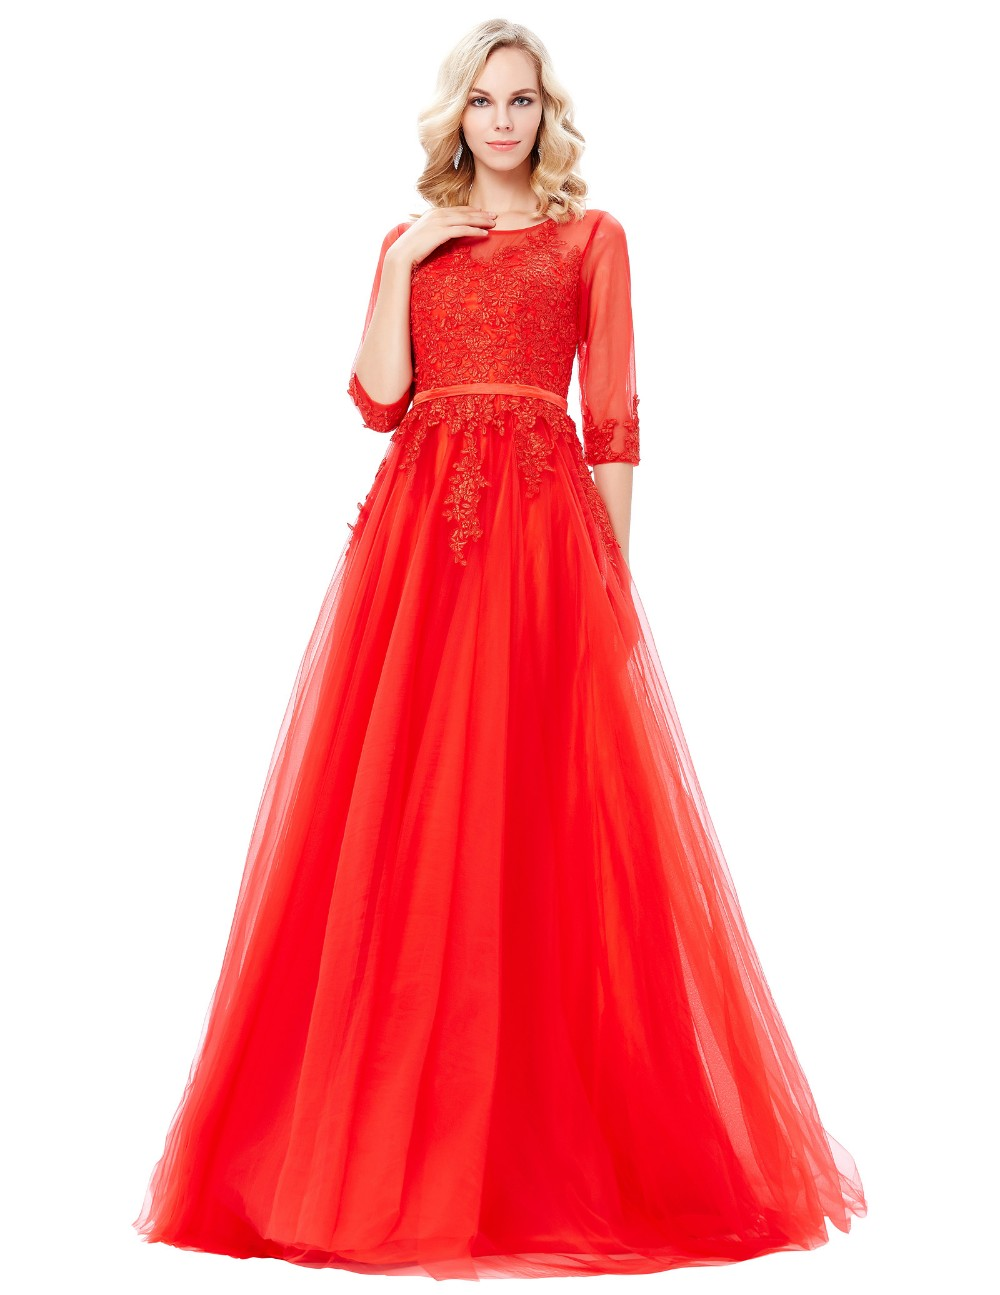 Grace Karin Floor-Length 3/4 Sleeve Long Tulle Netting Lace Red Evening Dress 8 Size US 2~16 GK000122-1